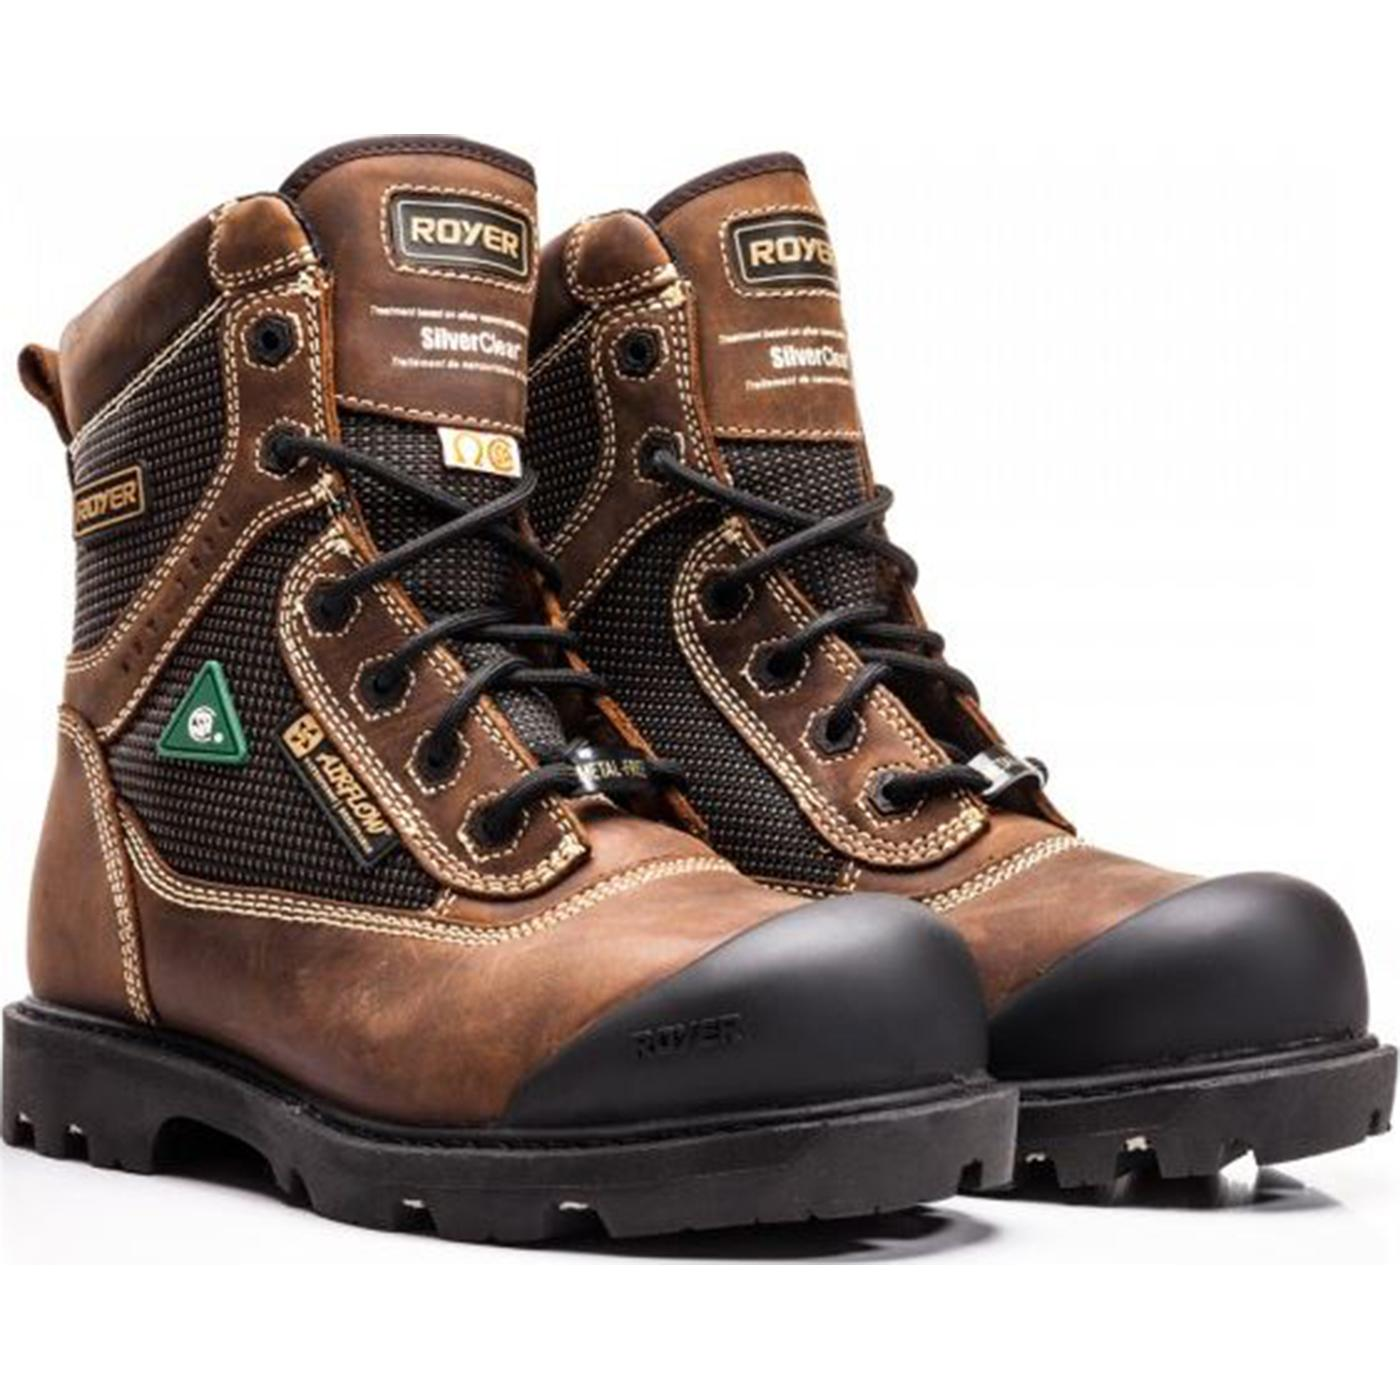 18084cc26f6 Royer Composite Toe CSA Approved Puncture-Resistant Waterproof Work Boot